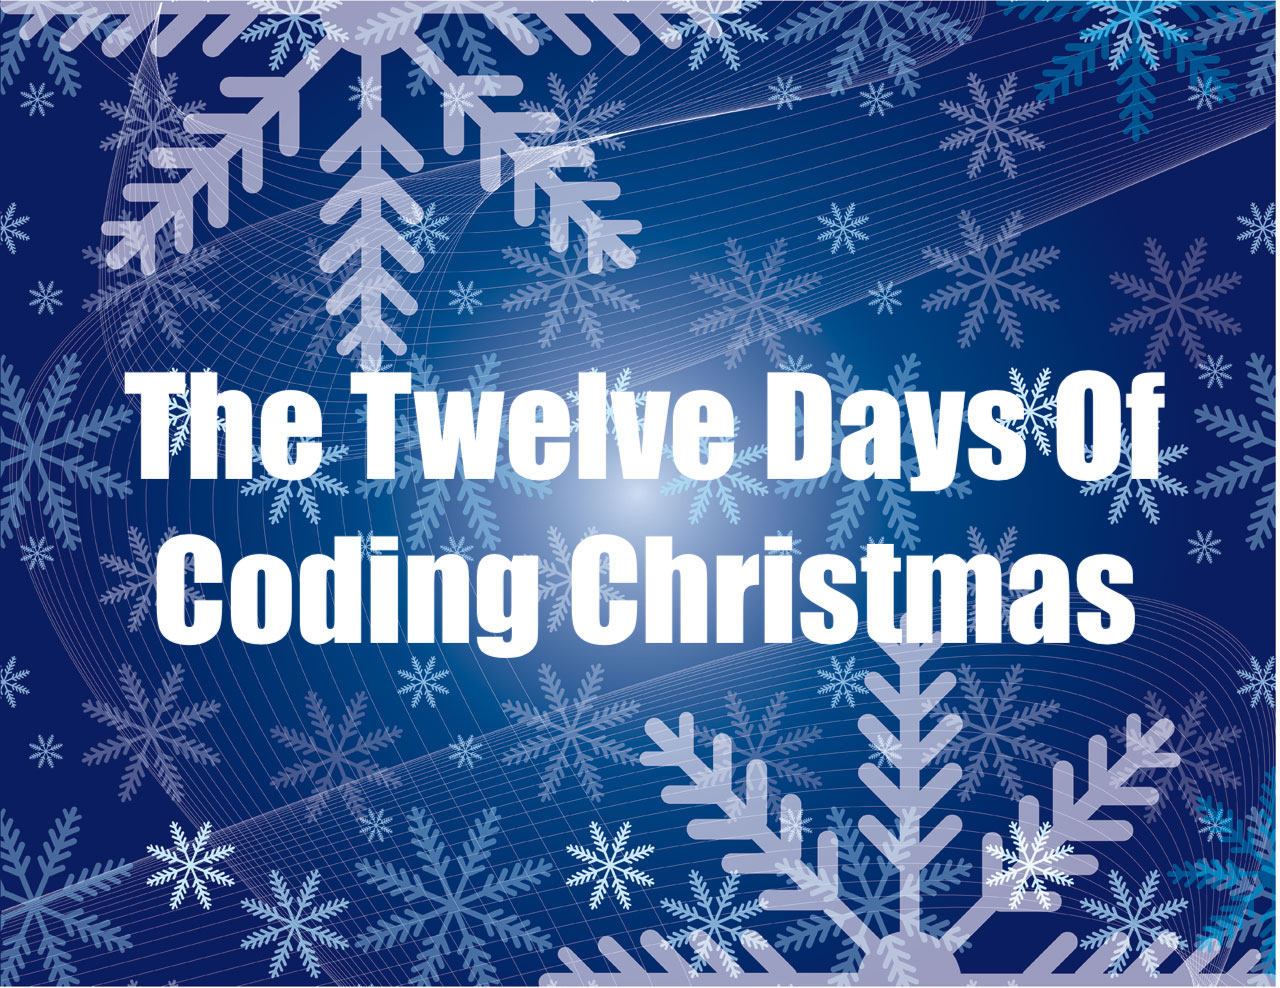 twelve-days-of-coding-christmas-cover